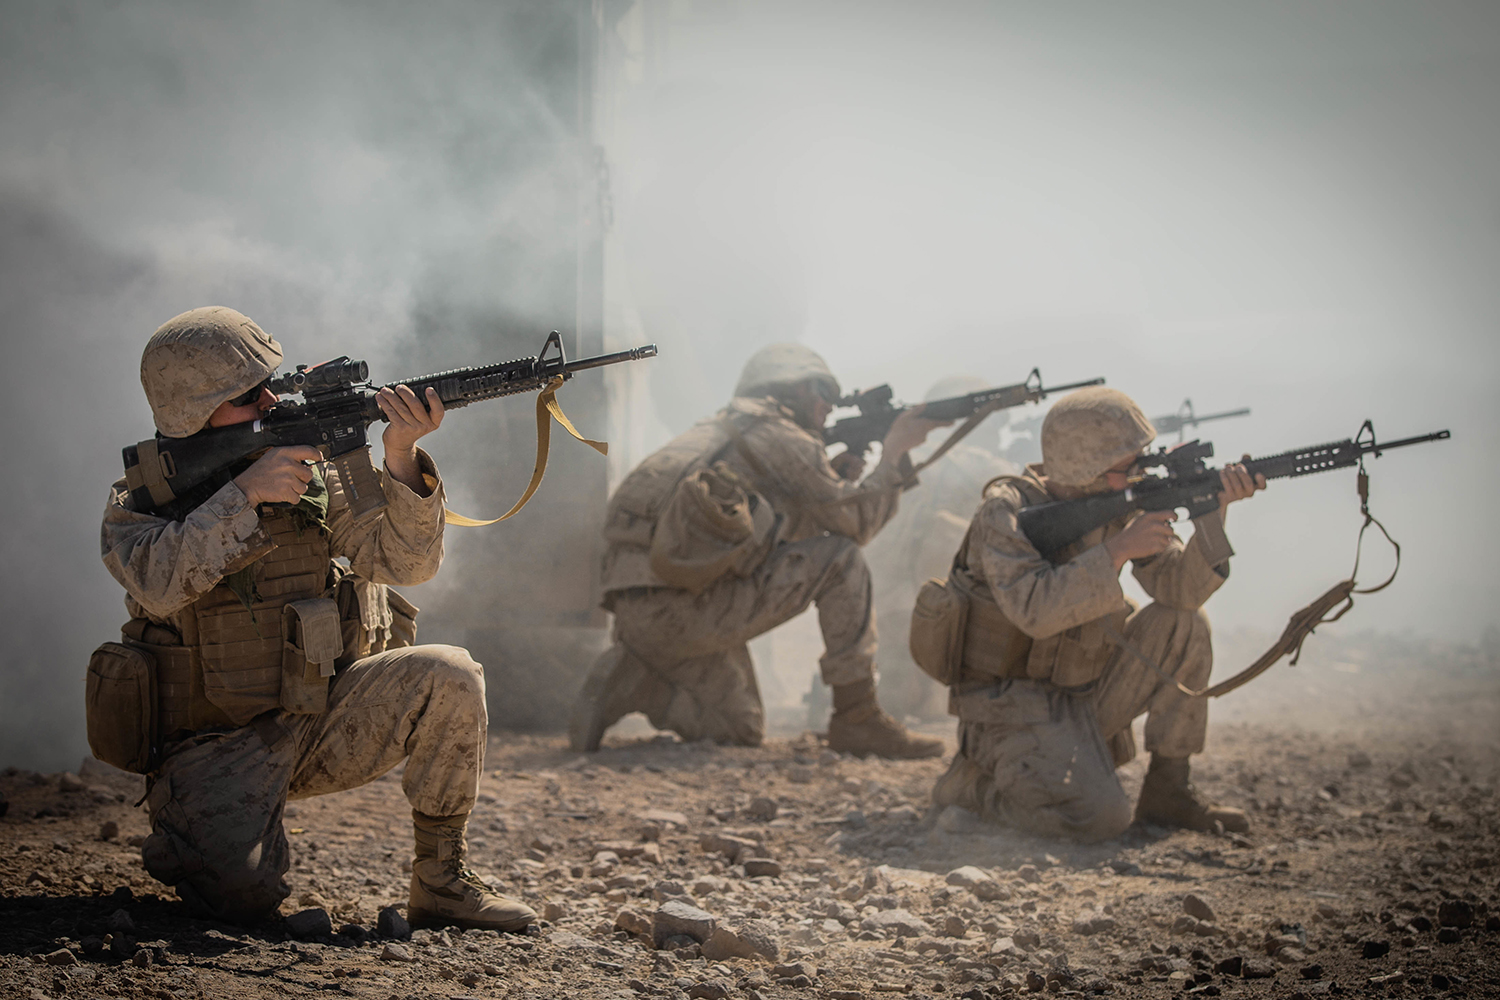 Marines fire M16A4 service rifles during the advance motorized operators course as part of Integrated Training Exercise 1-20 on Marine Corps Air Ground Combat Center Twentynine Palms, Calif., Oct. 11, 2019. (Cpl. Scott Jenkins/Marine Corps)